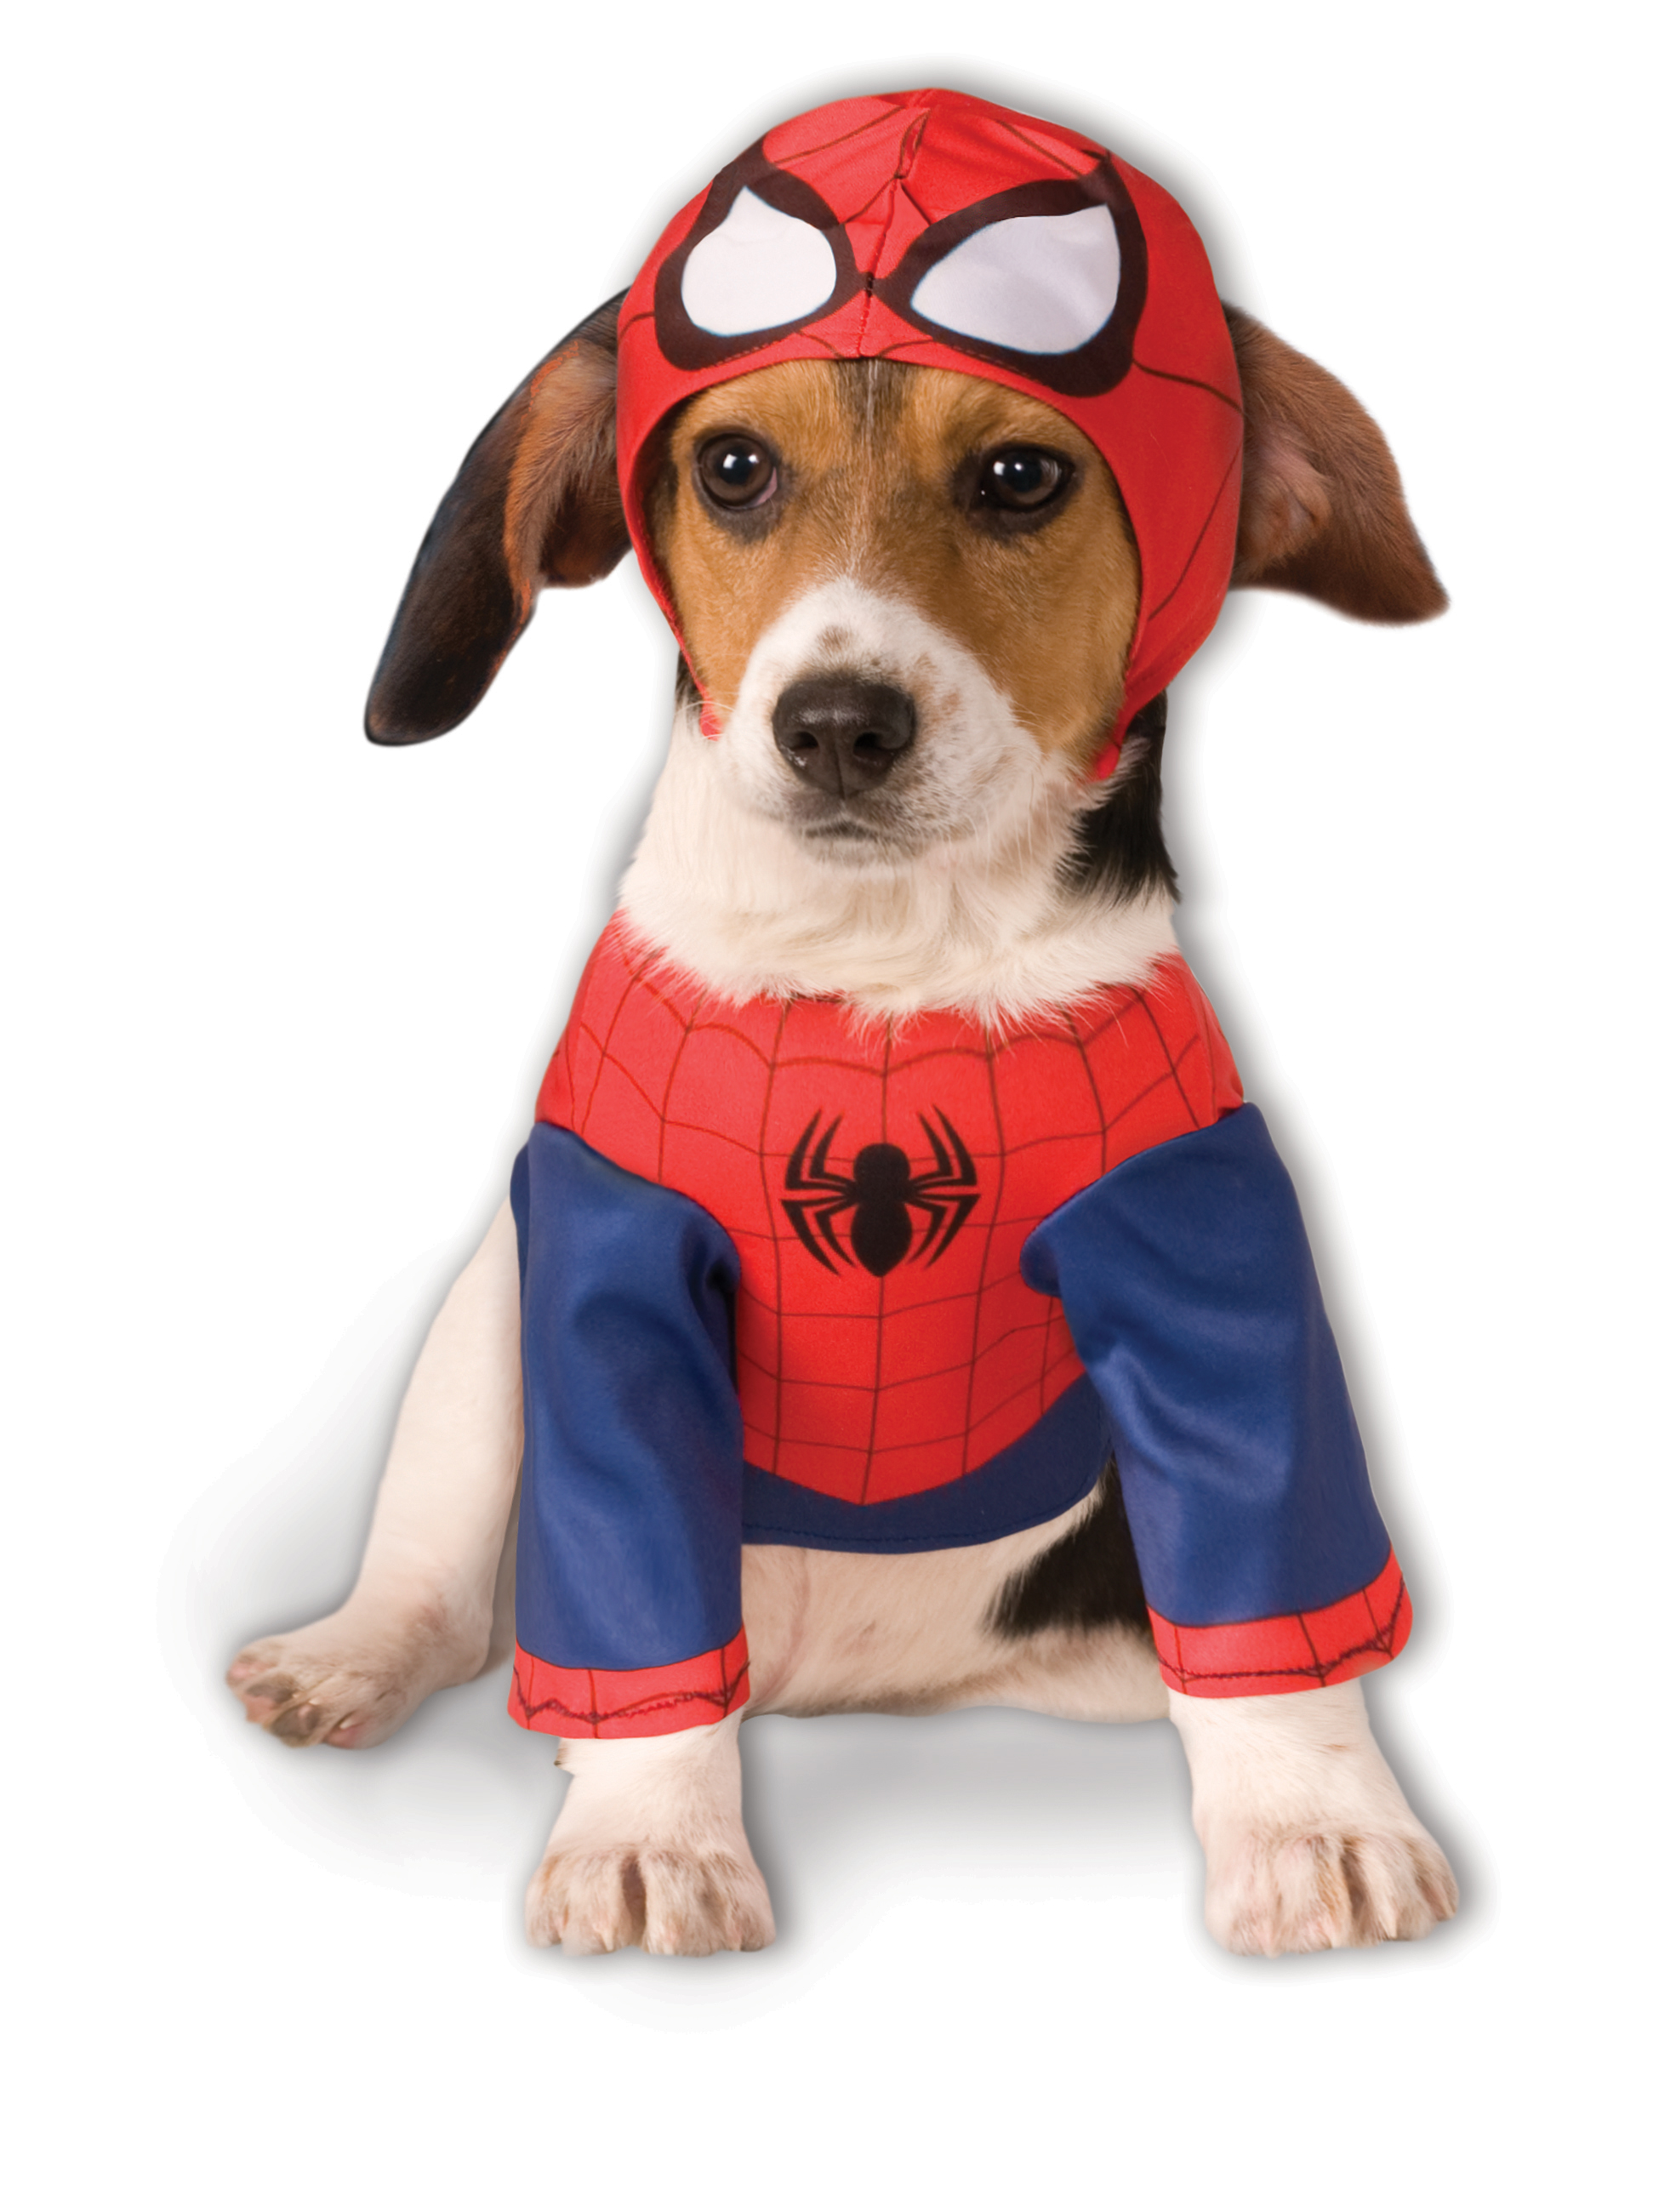 Spider-Man Costume For Pets  sc 1 st  KOZ1 & Halloween Costumes for Adults u0026 Kids